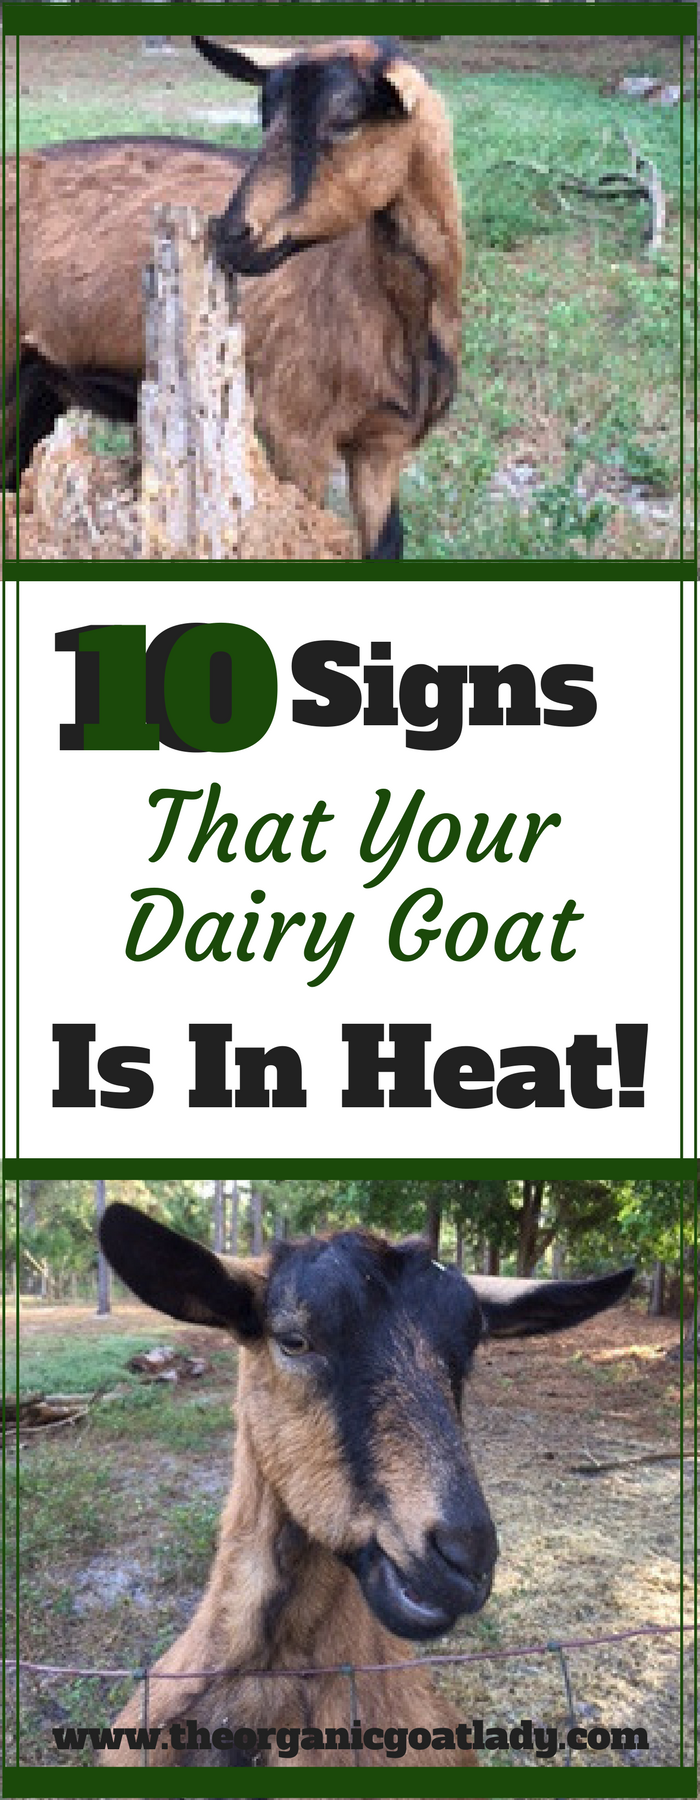 10 Signs That Your Dairy Goat Is In Heat!